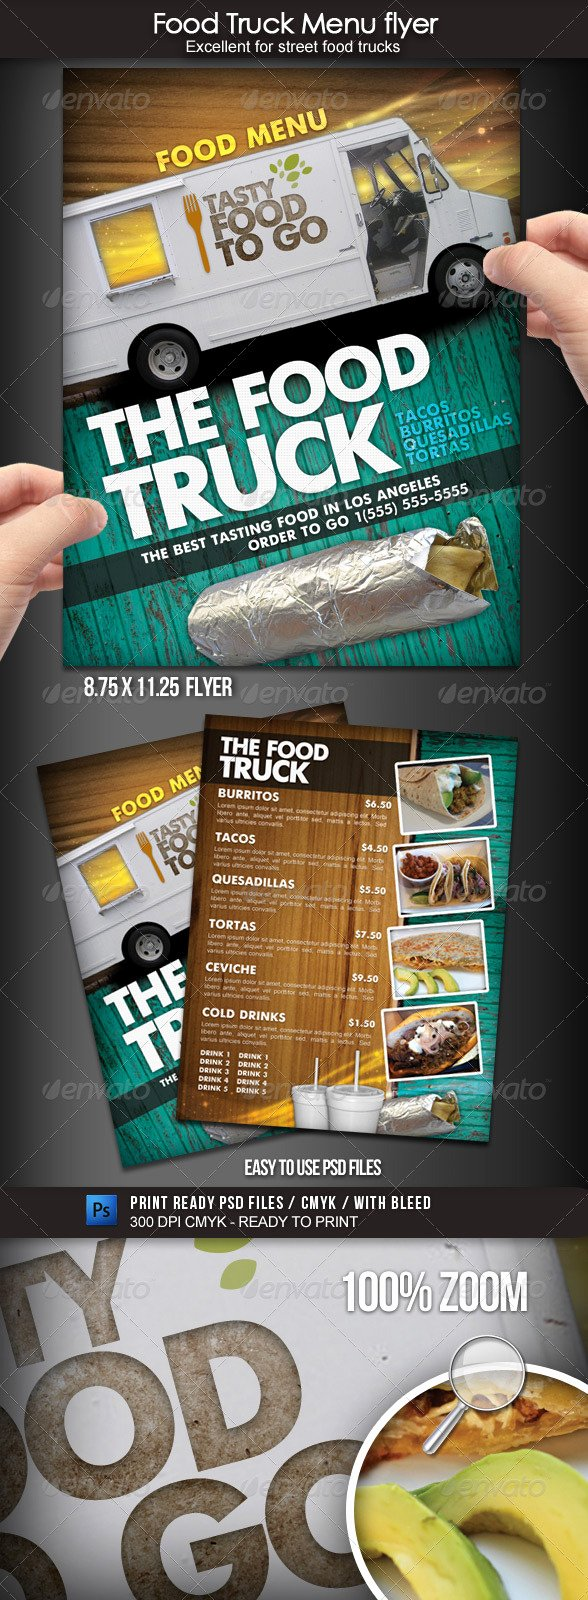 Food Truck Menu Template Inspirational 60 Premium Restaurant Menu Templates Dzineflip